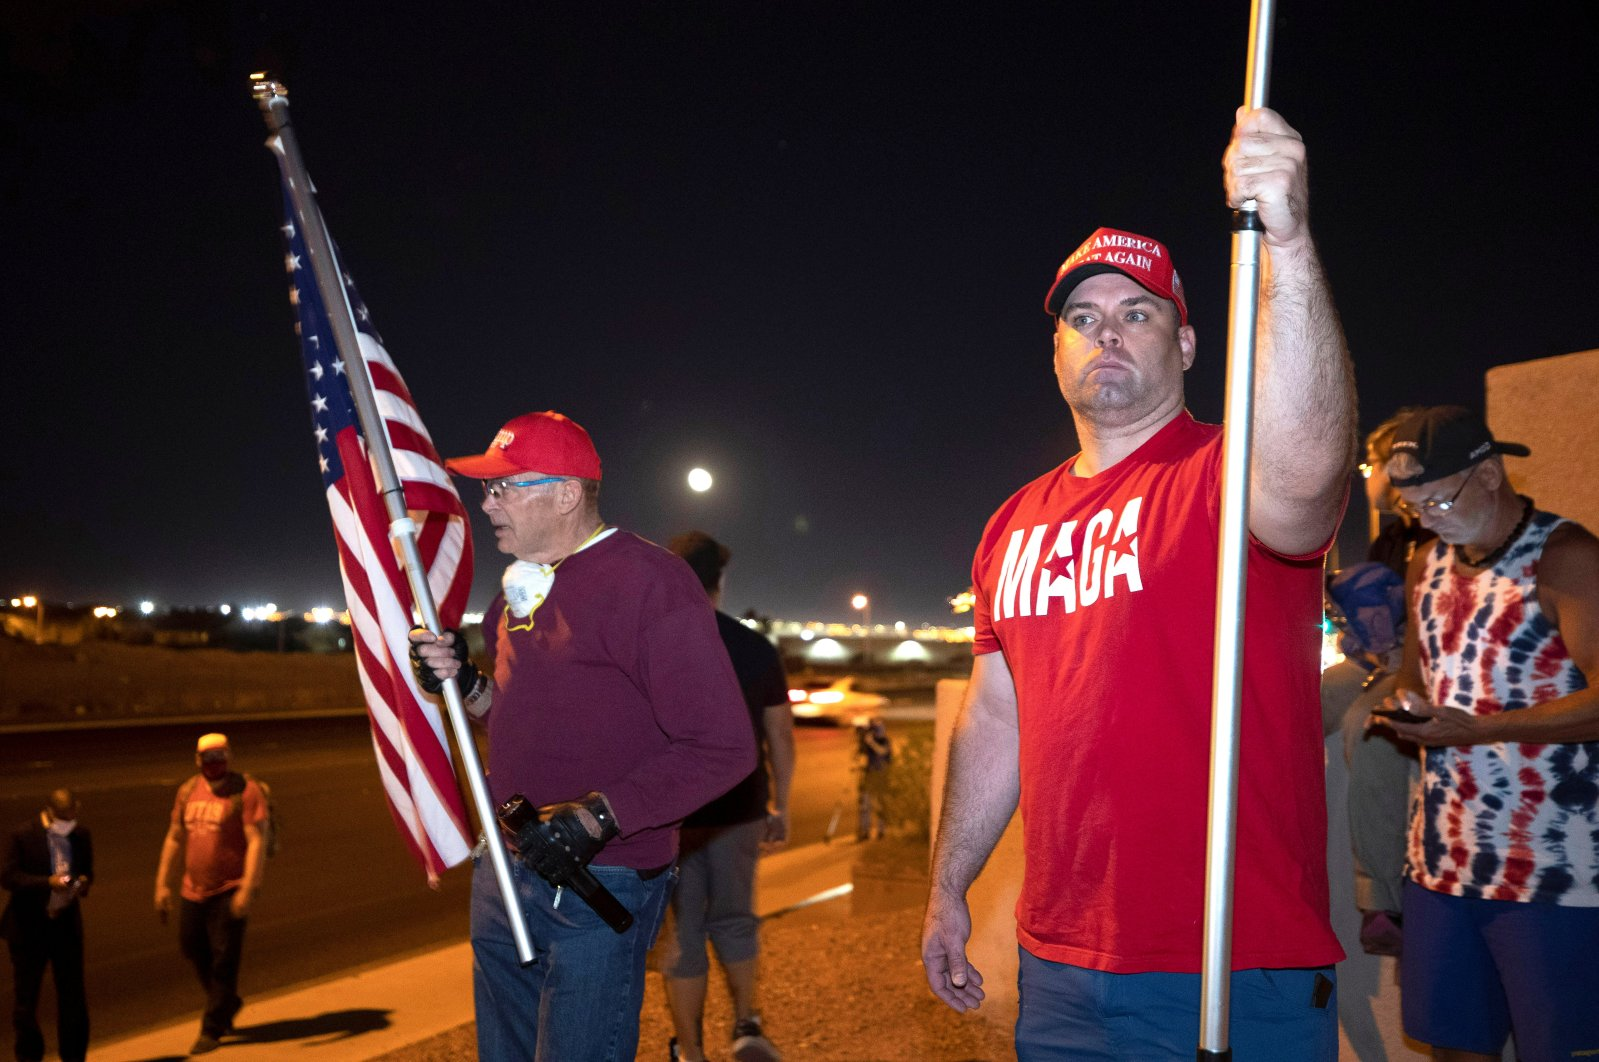 """William Carpenter (L) and Lance Baker, supporters of U.S. President Donald Trump, hold American flags during a """"Stop the Steal"""" protest at the Clark County Election Center in North Las Vegas, Nevada, U.S., Nov. 4, 2020. (Reuters Photo)"""